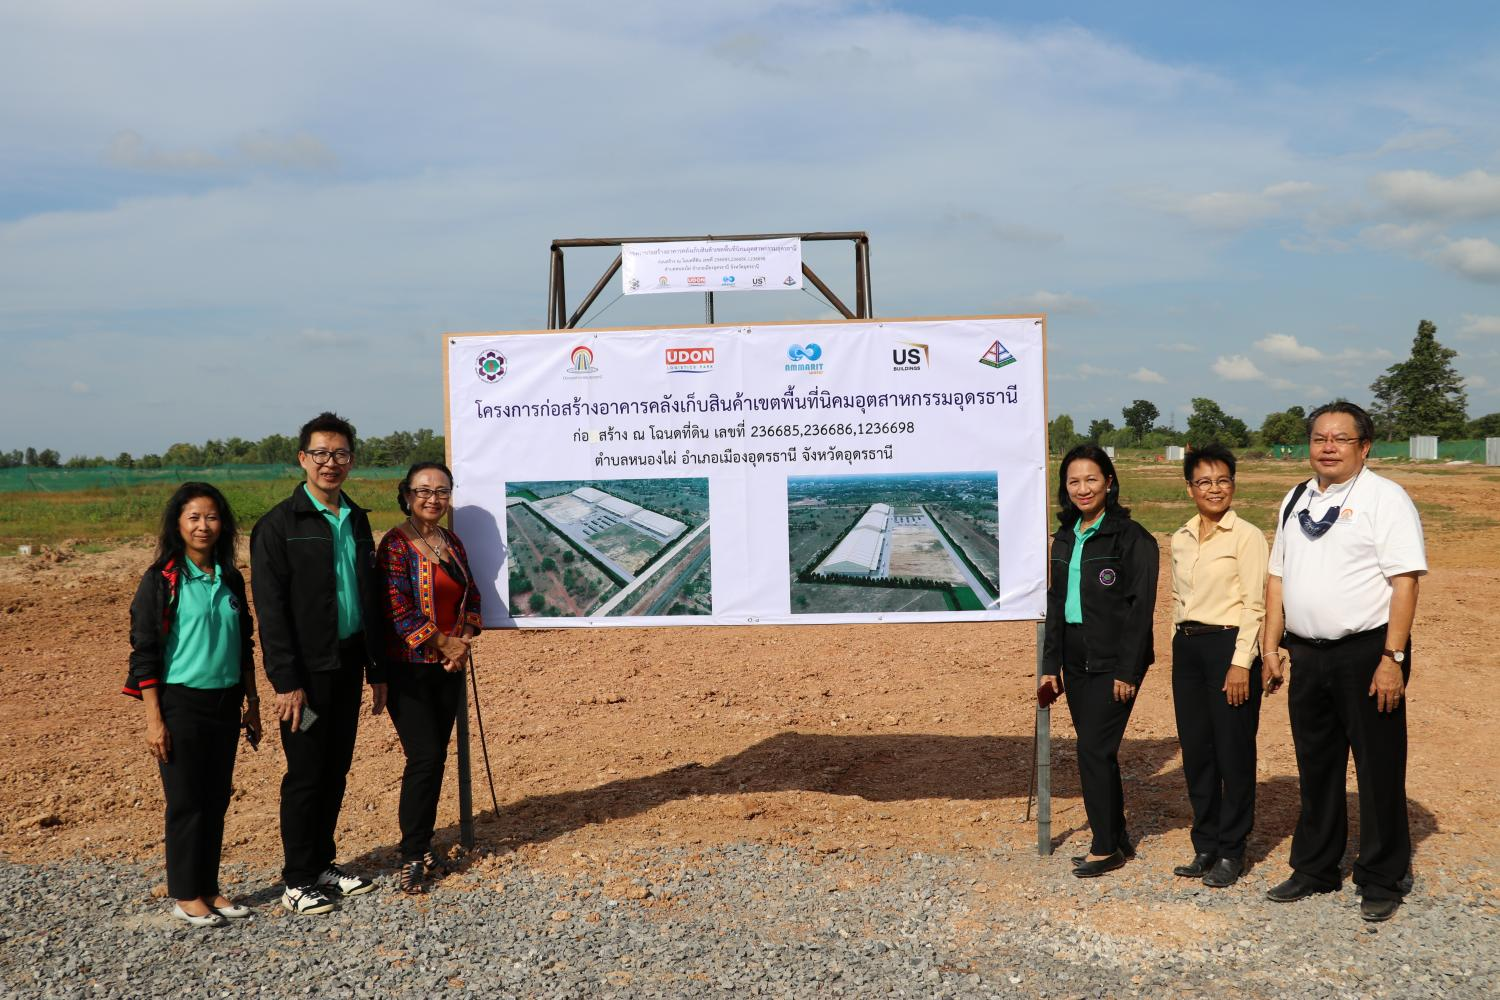 Ms Somchint, third right, expects Udon Thani Industrial City to lure up to 100 billion baht in investment.